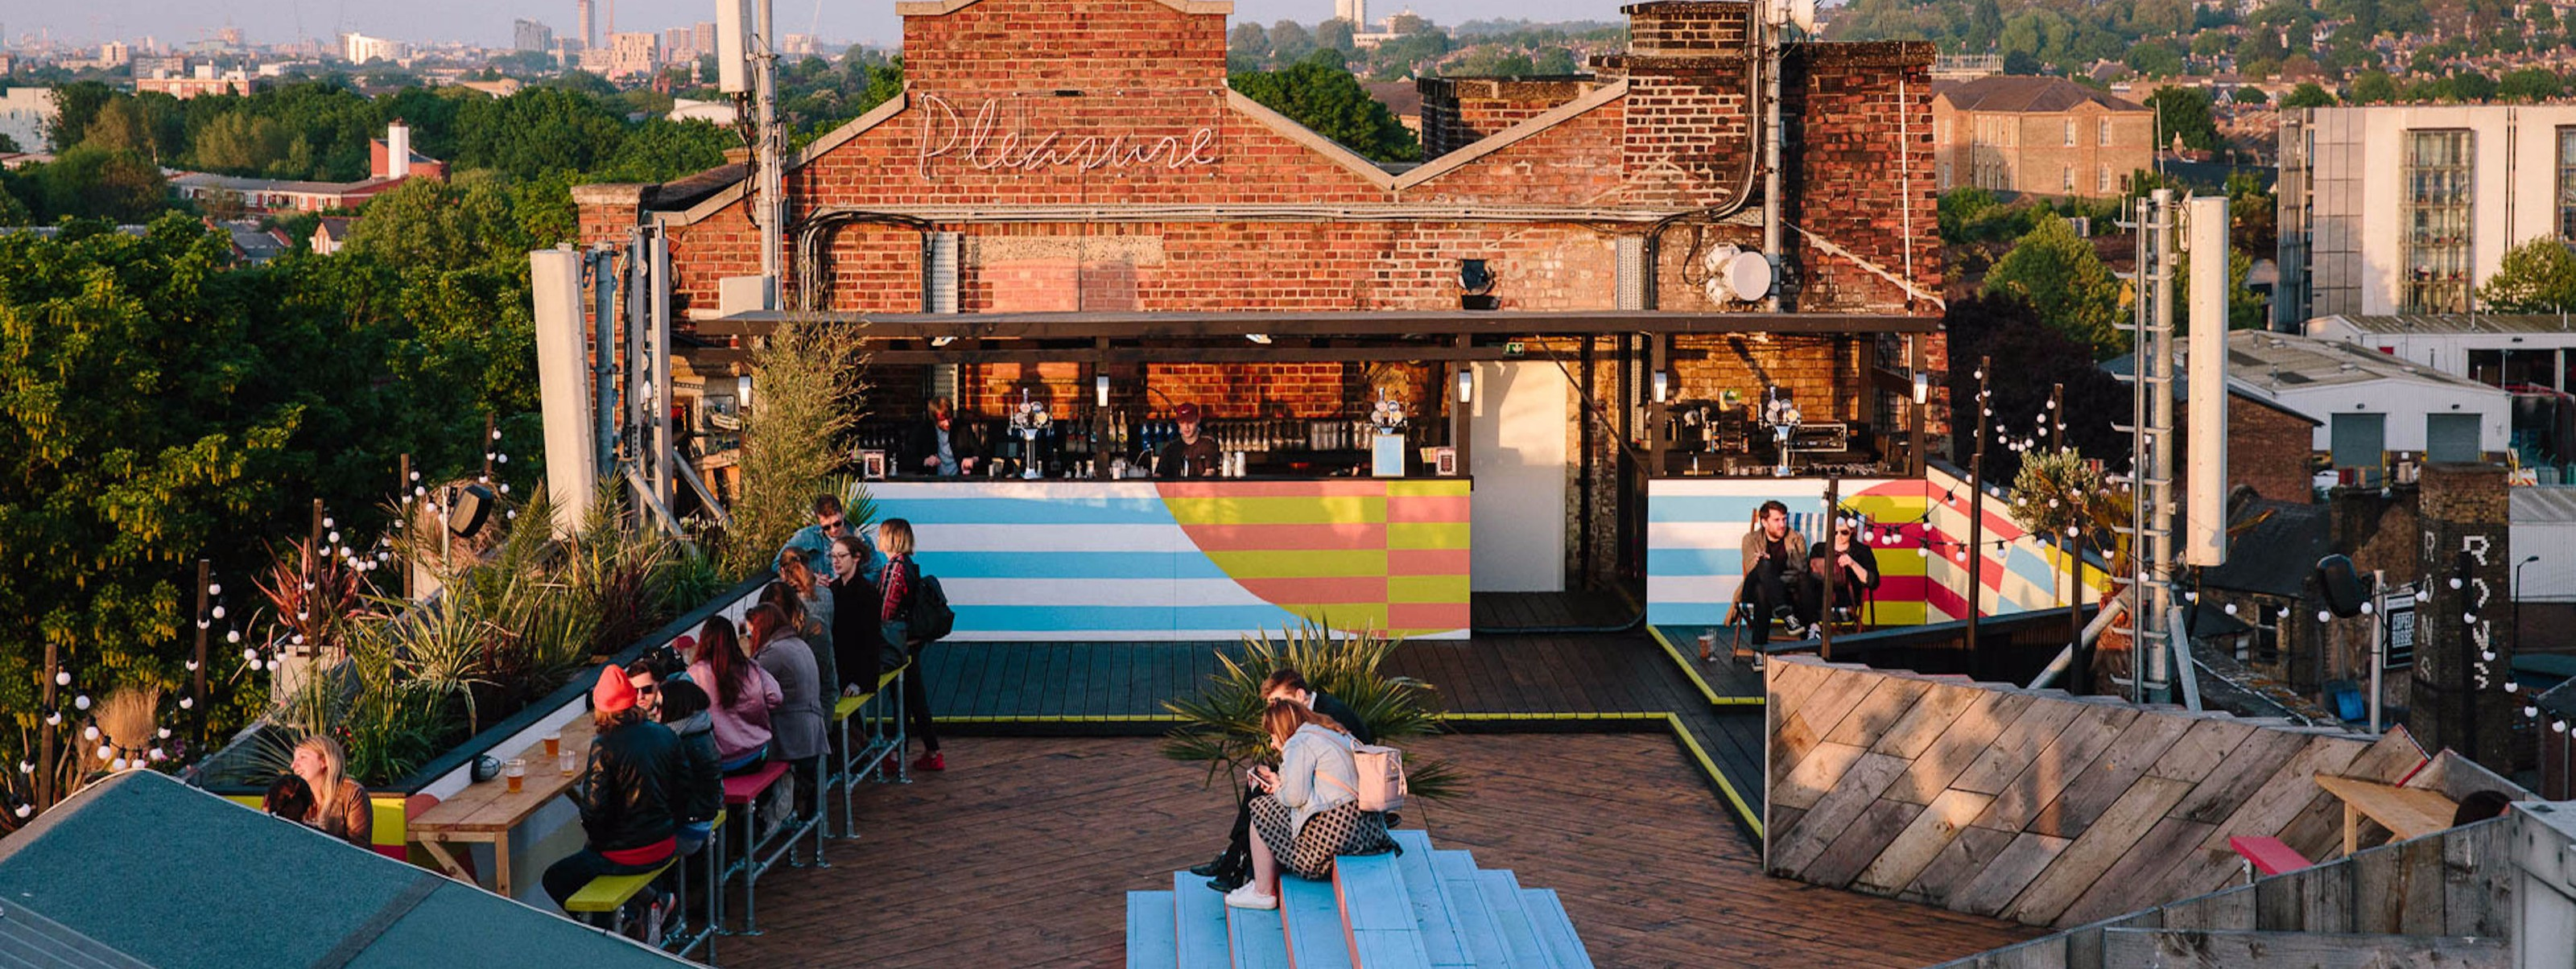 Bussey Rooftop Bar Peckham London The Infatuation